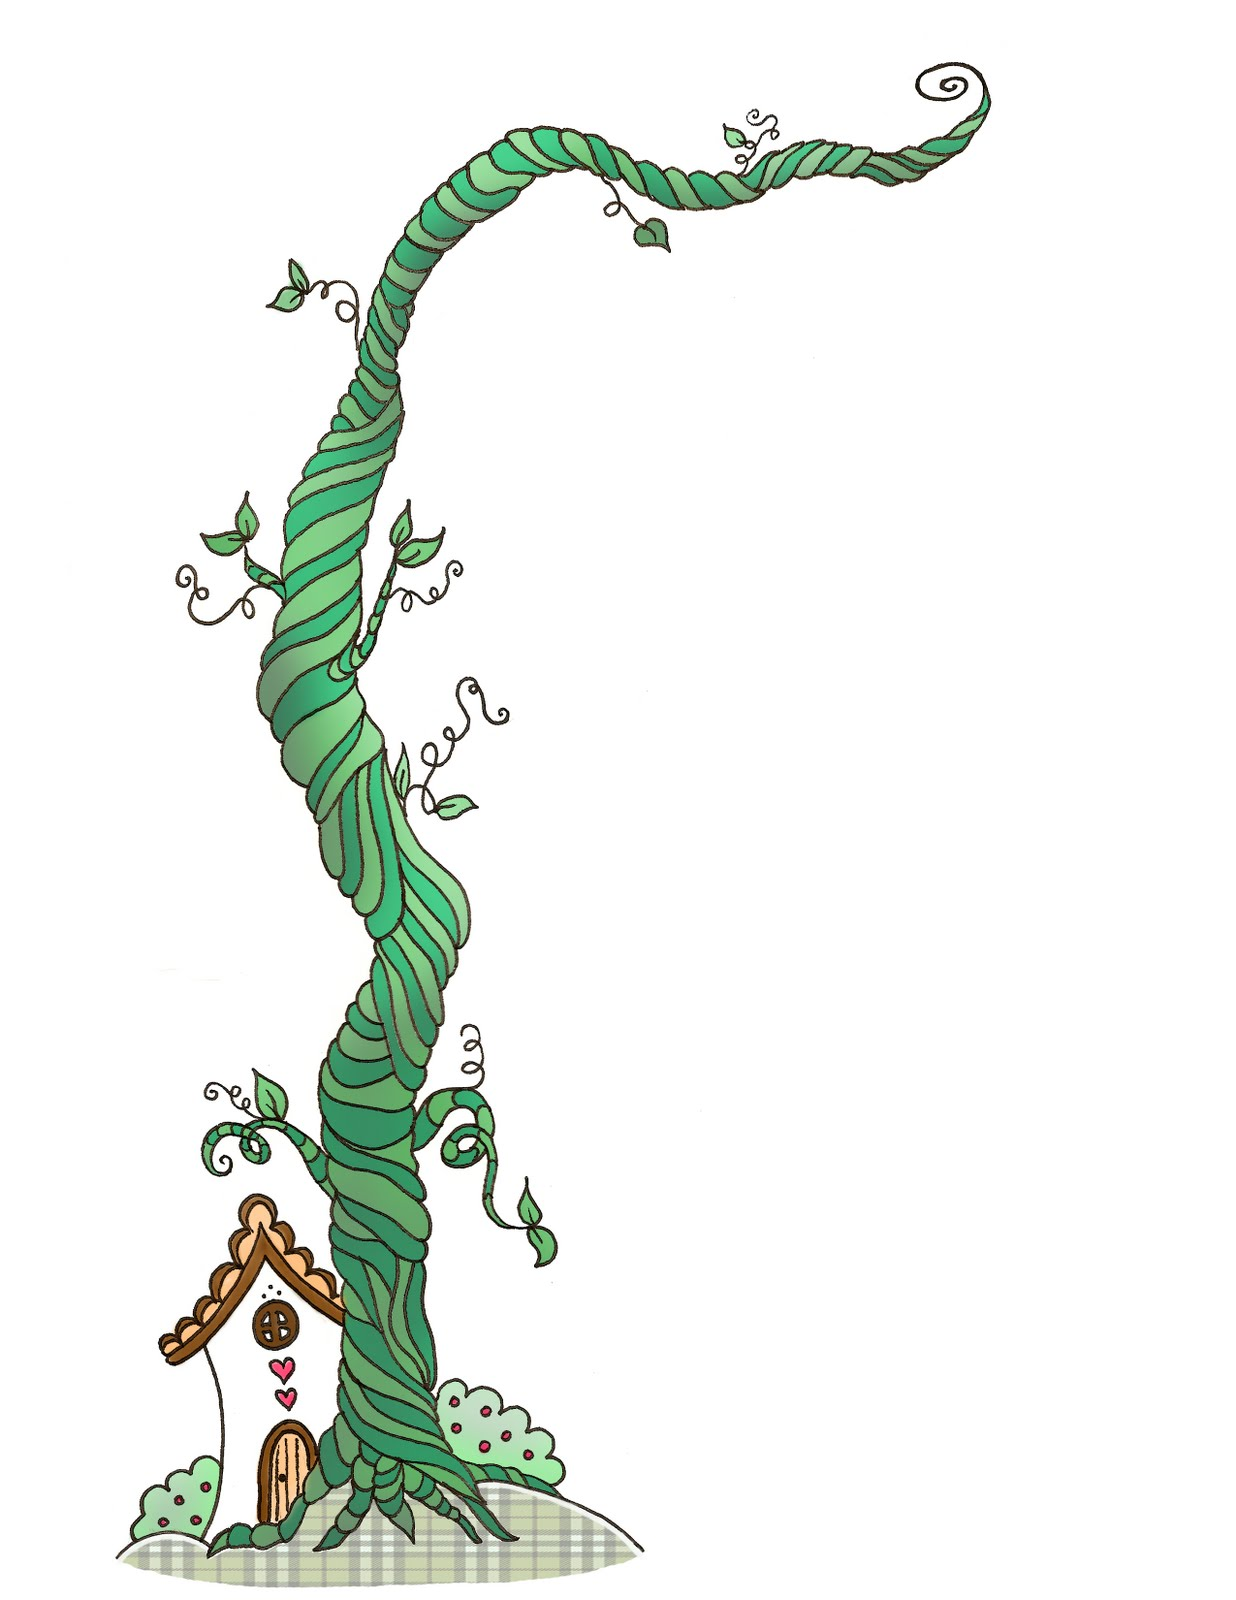 Jack From Jack And The Beanst - Beanstalk Clipart